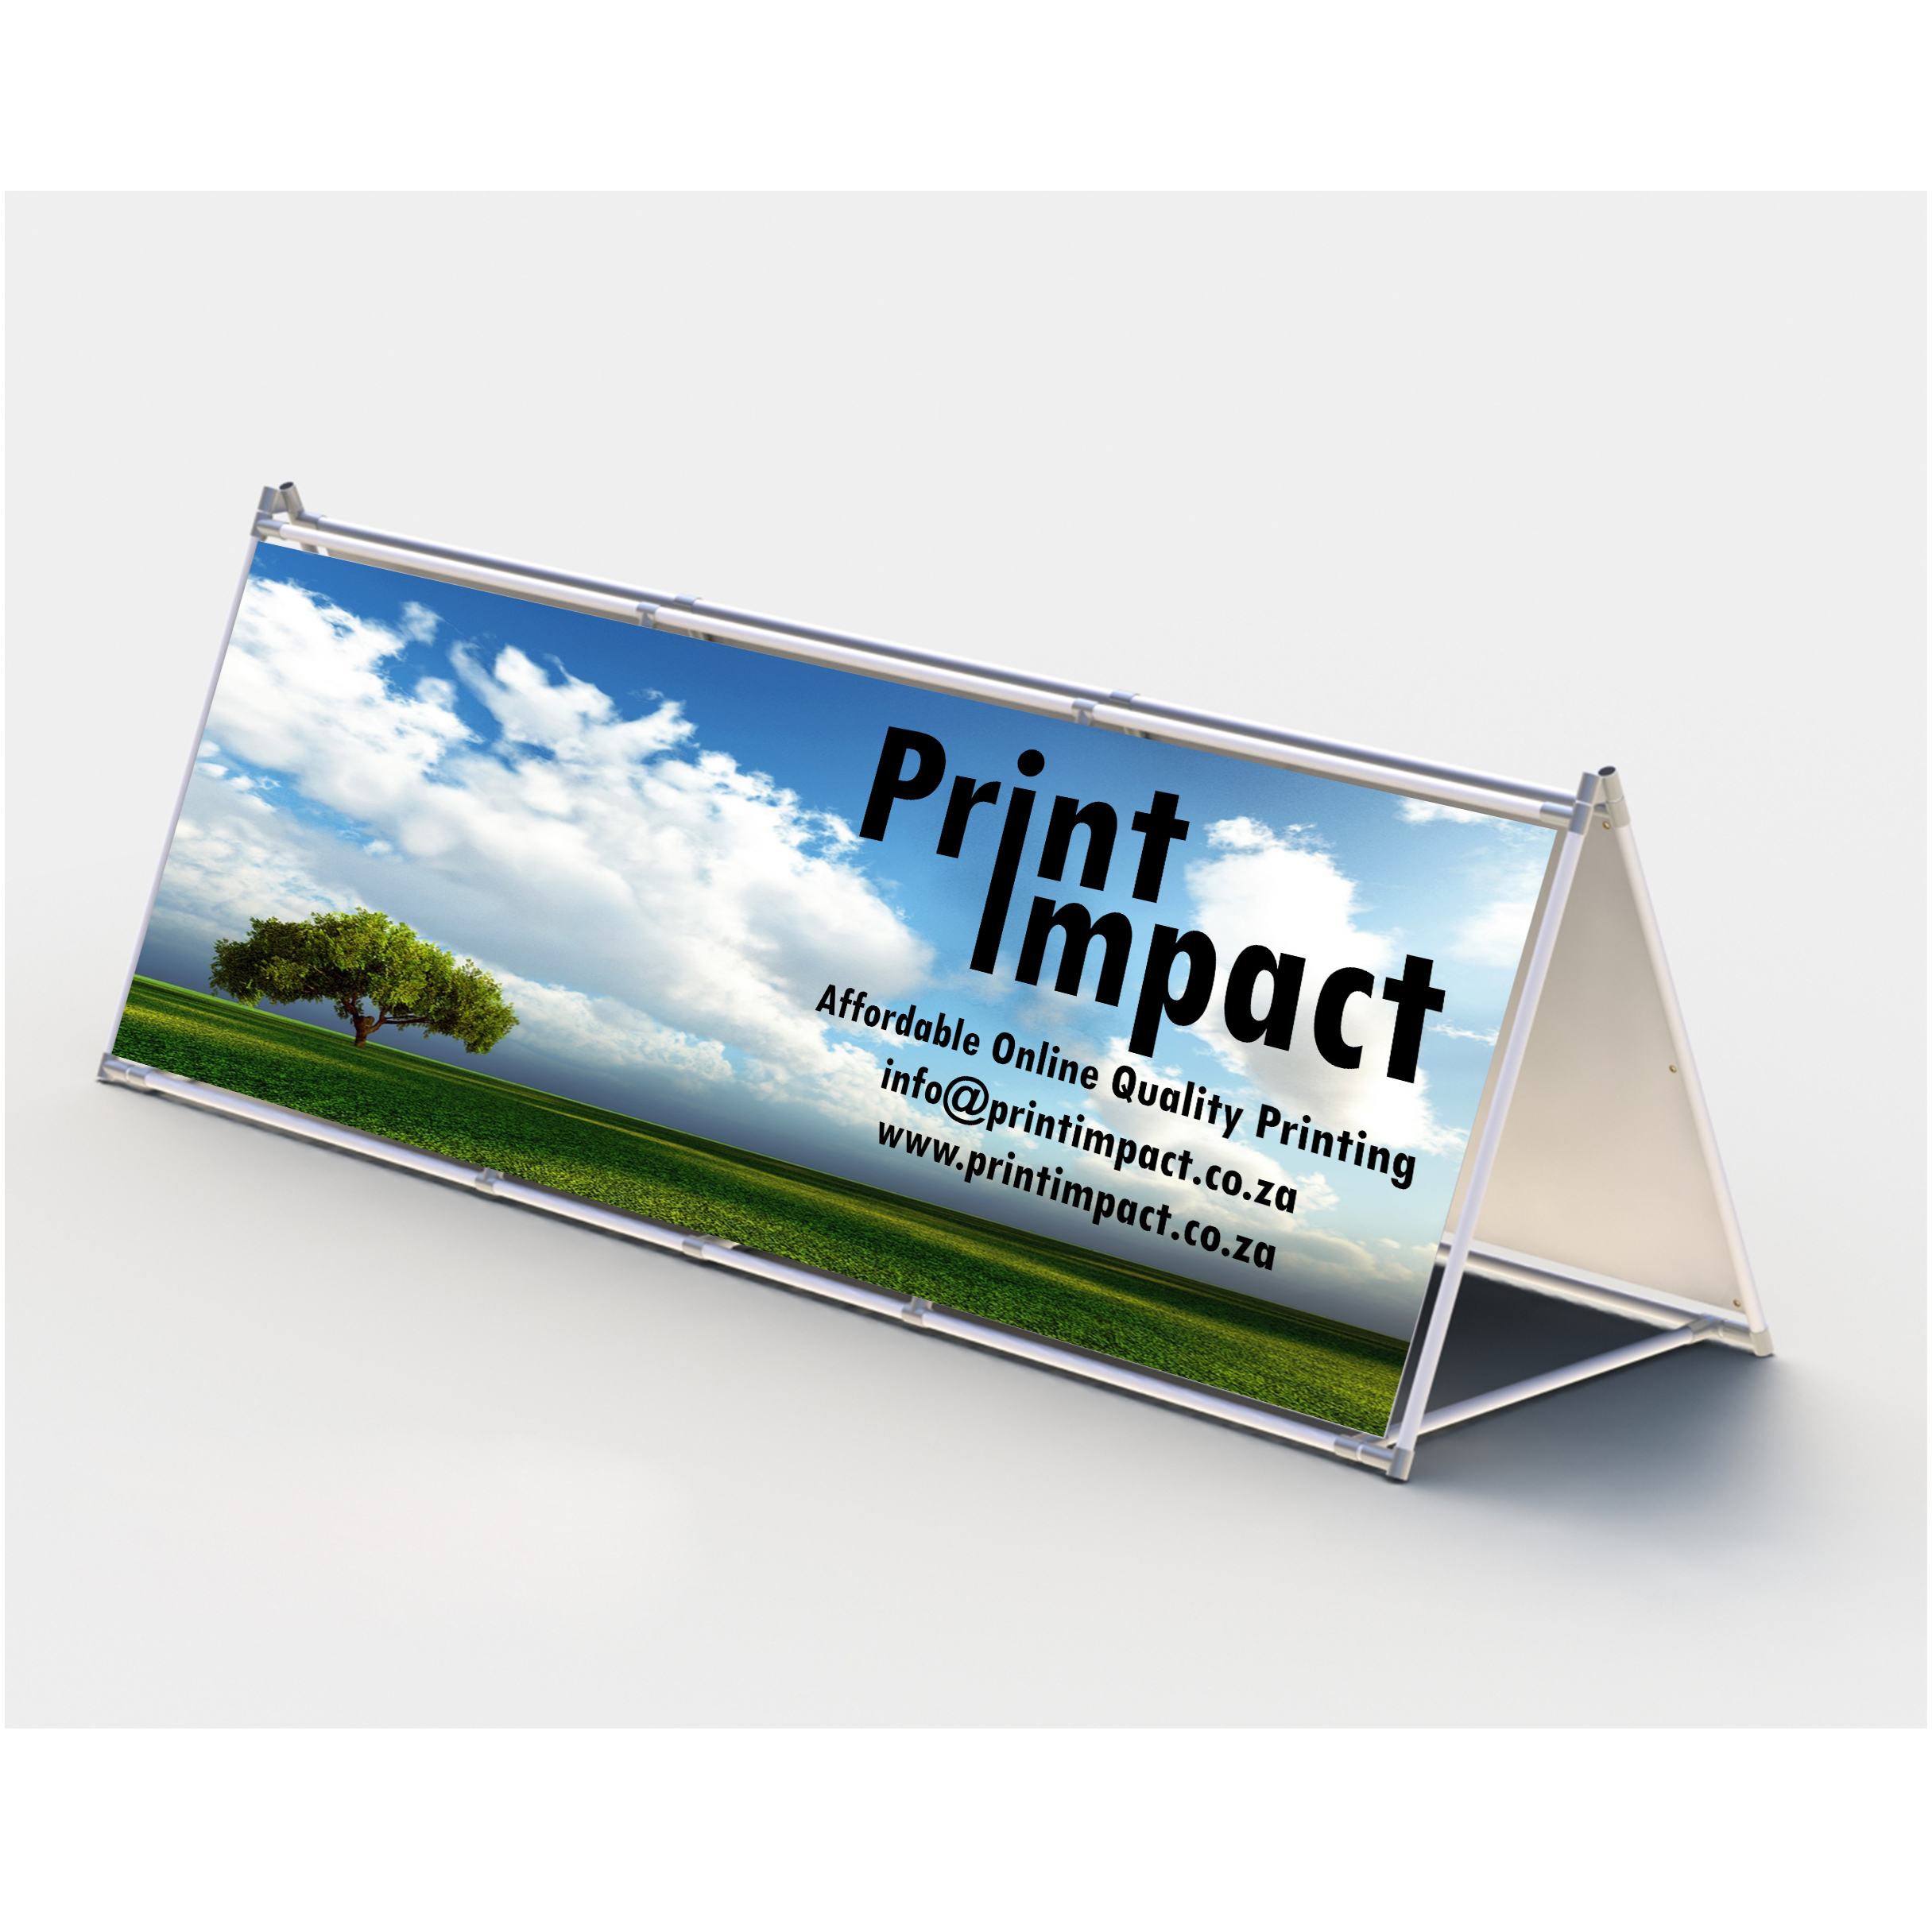 Temporary Banner A-Frames are perfect for your Outdoor Event.